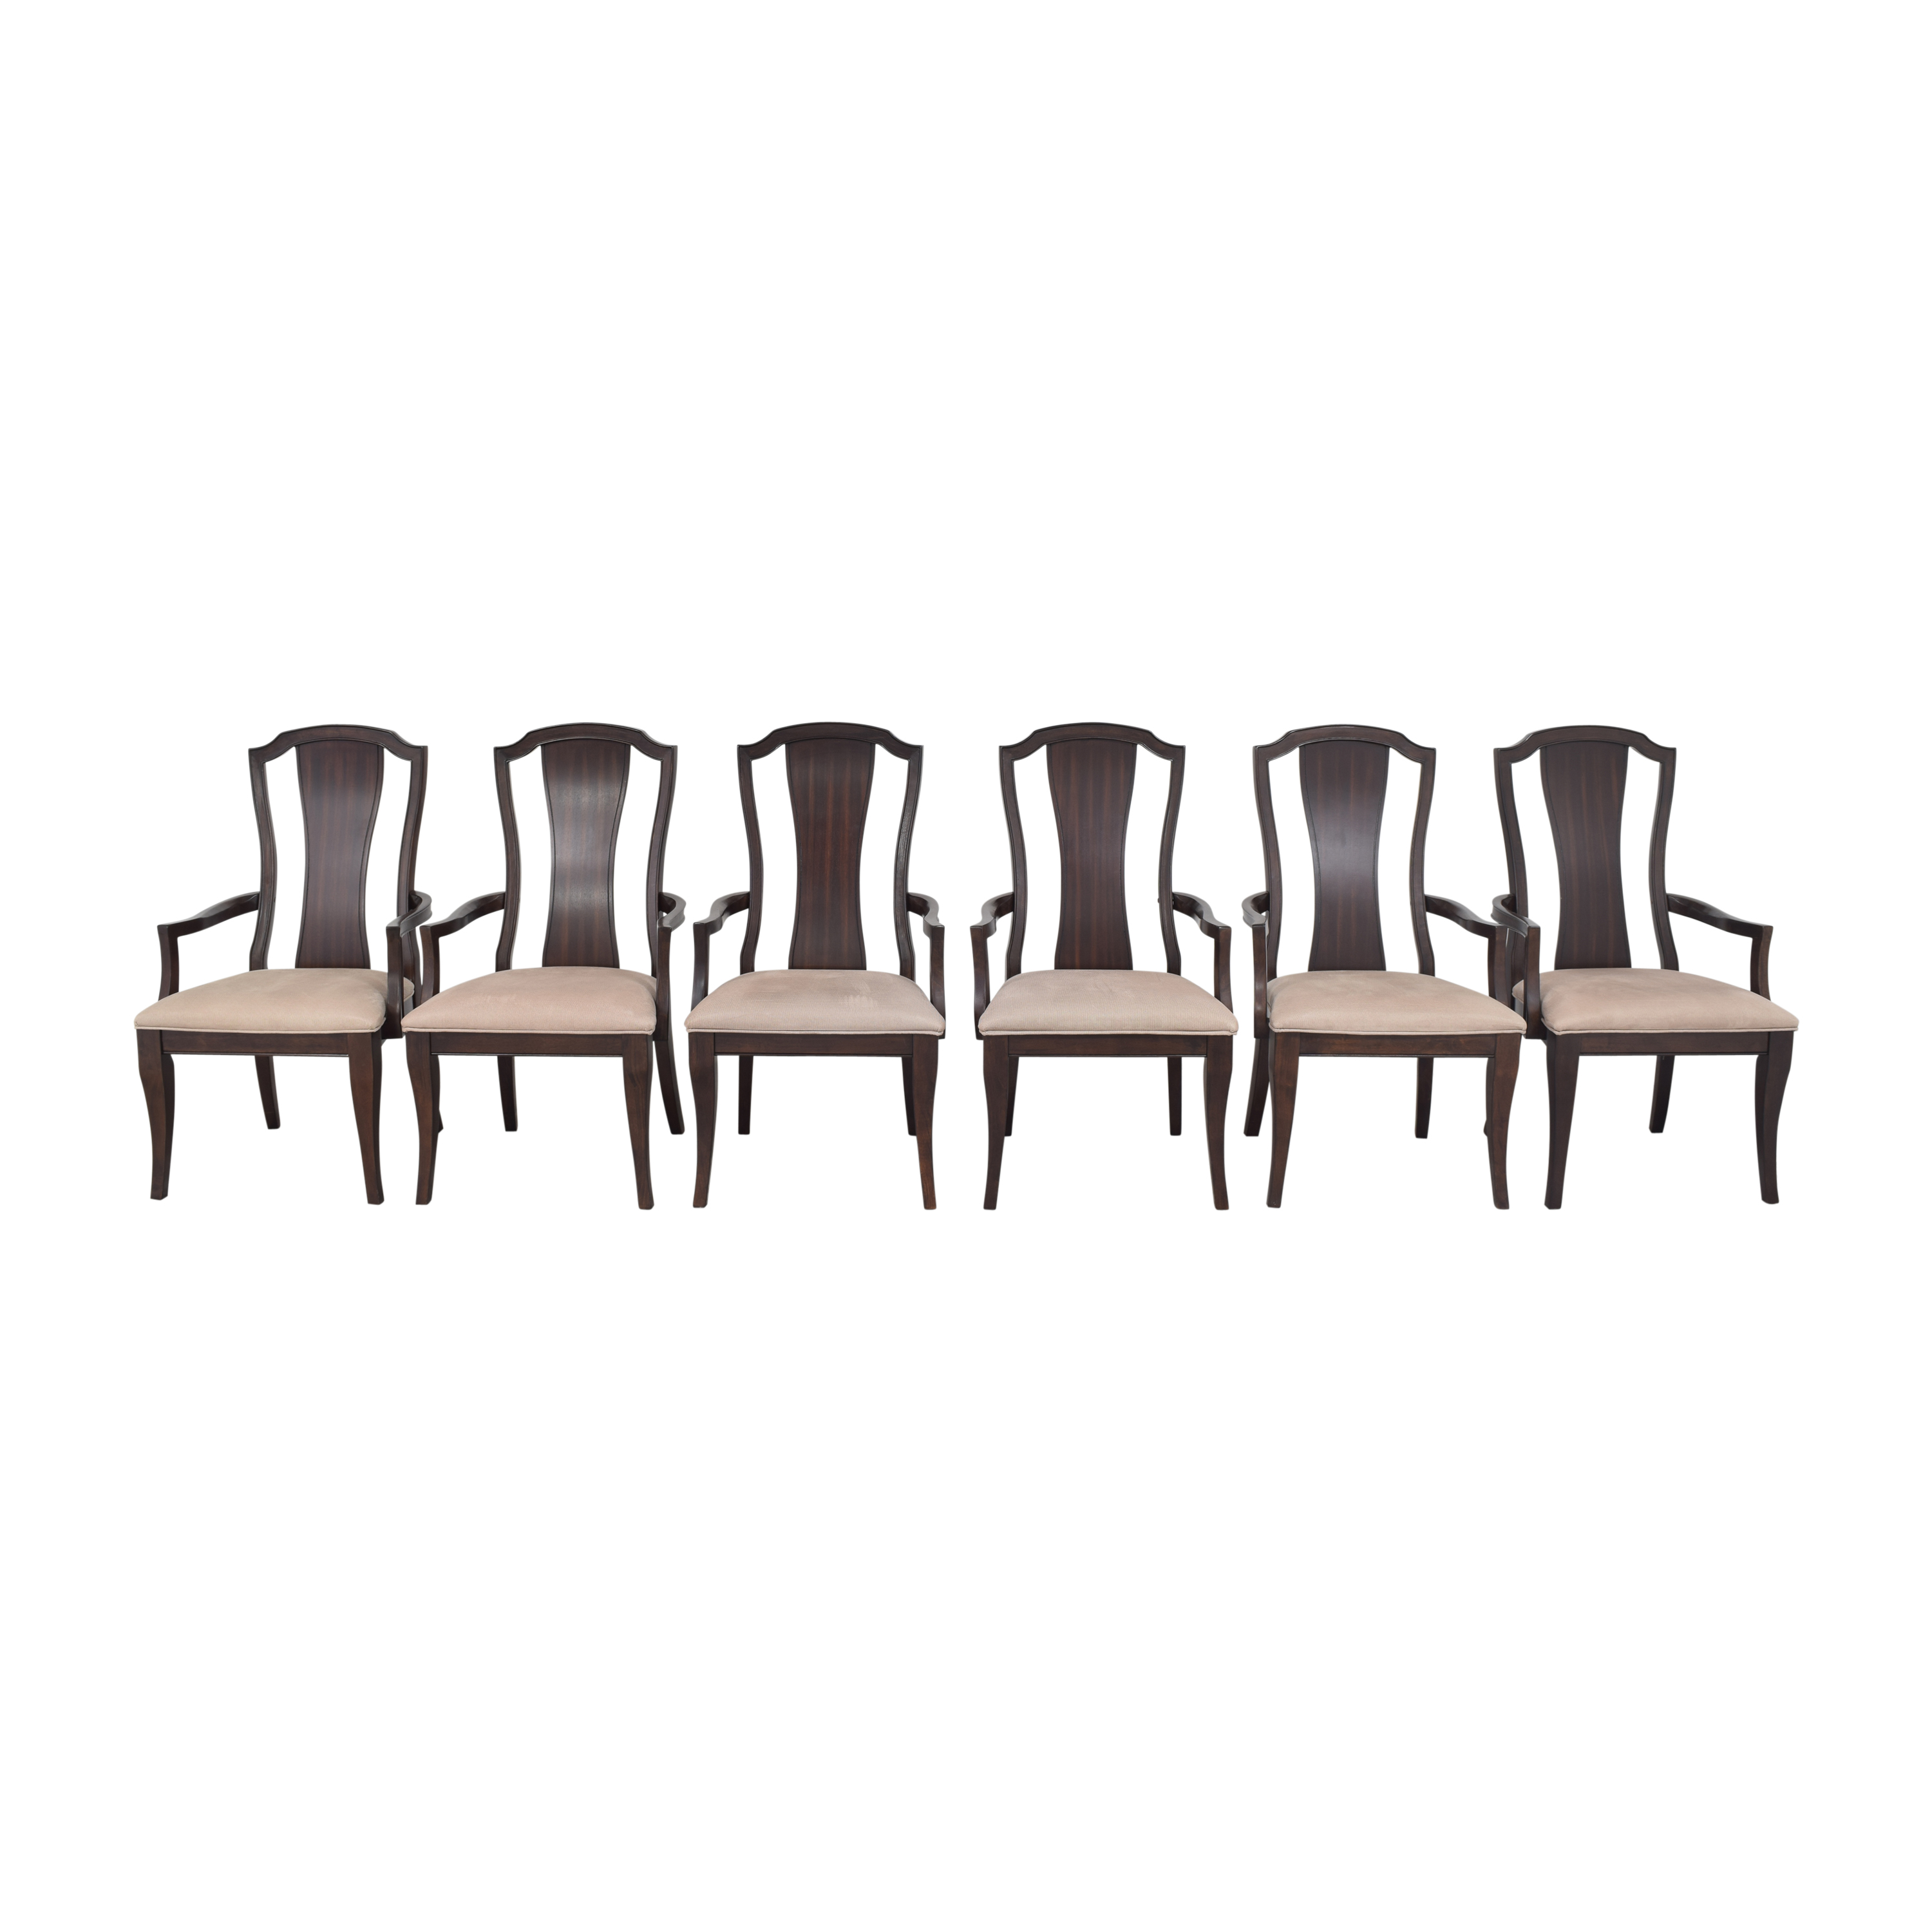 Legacy Classic Furniture Legacy Classic Dining Arm Chairs dark and light brown